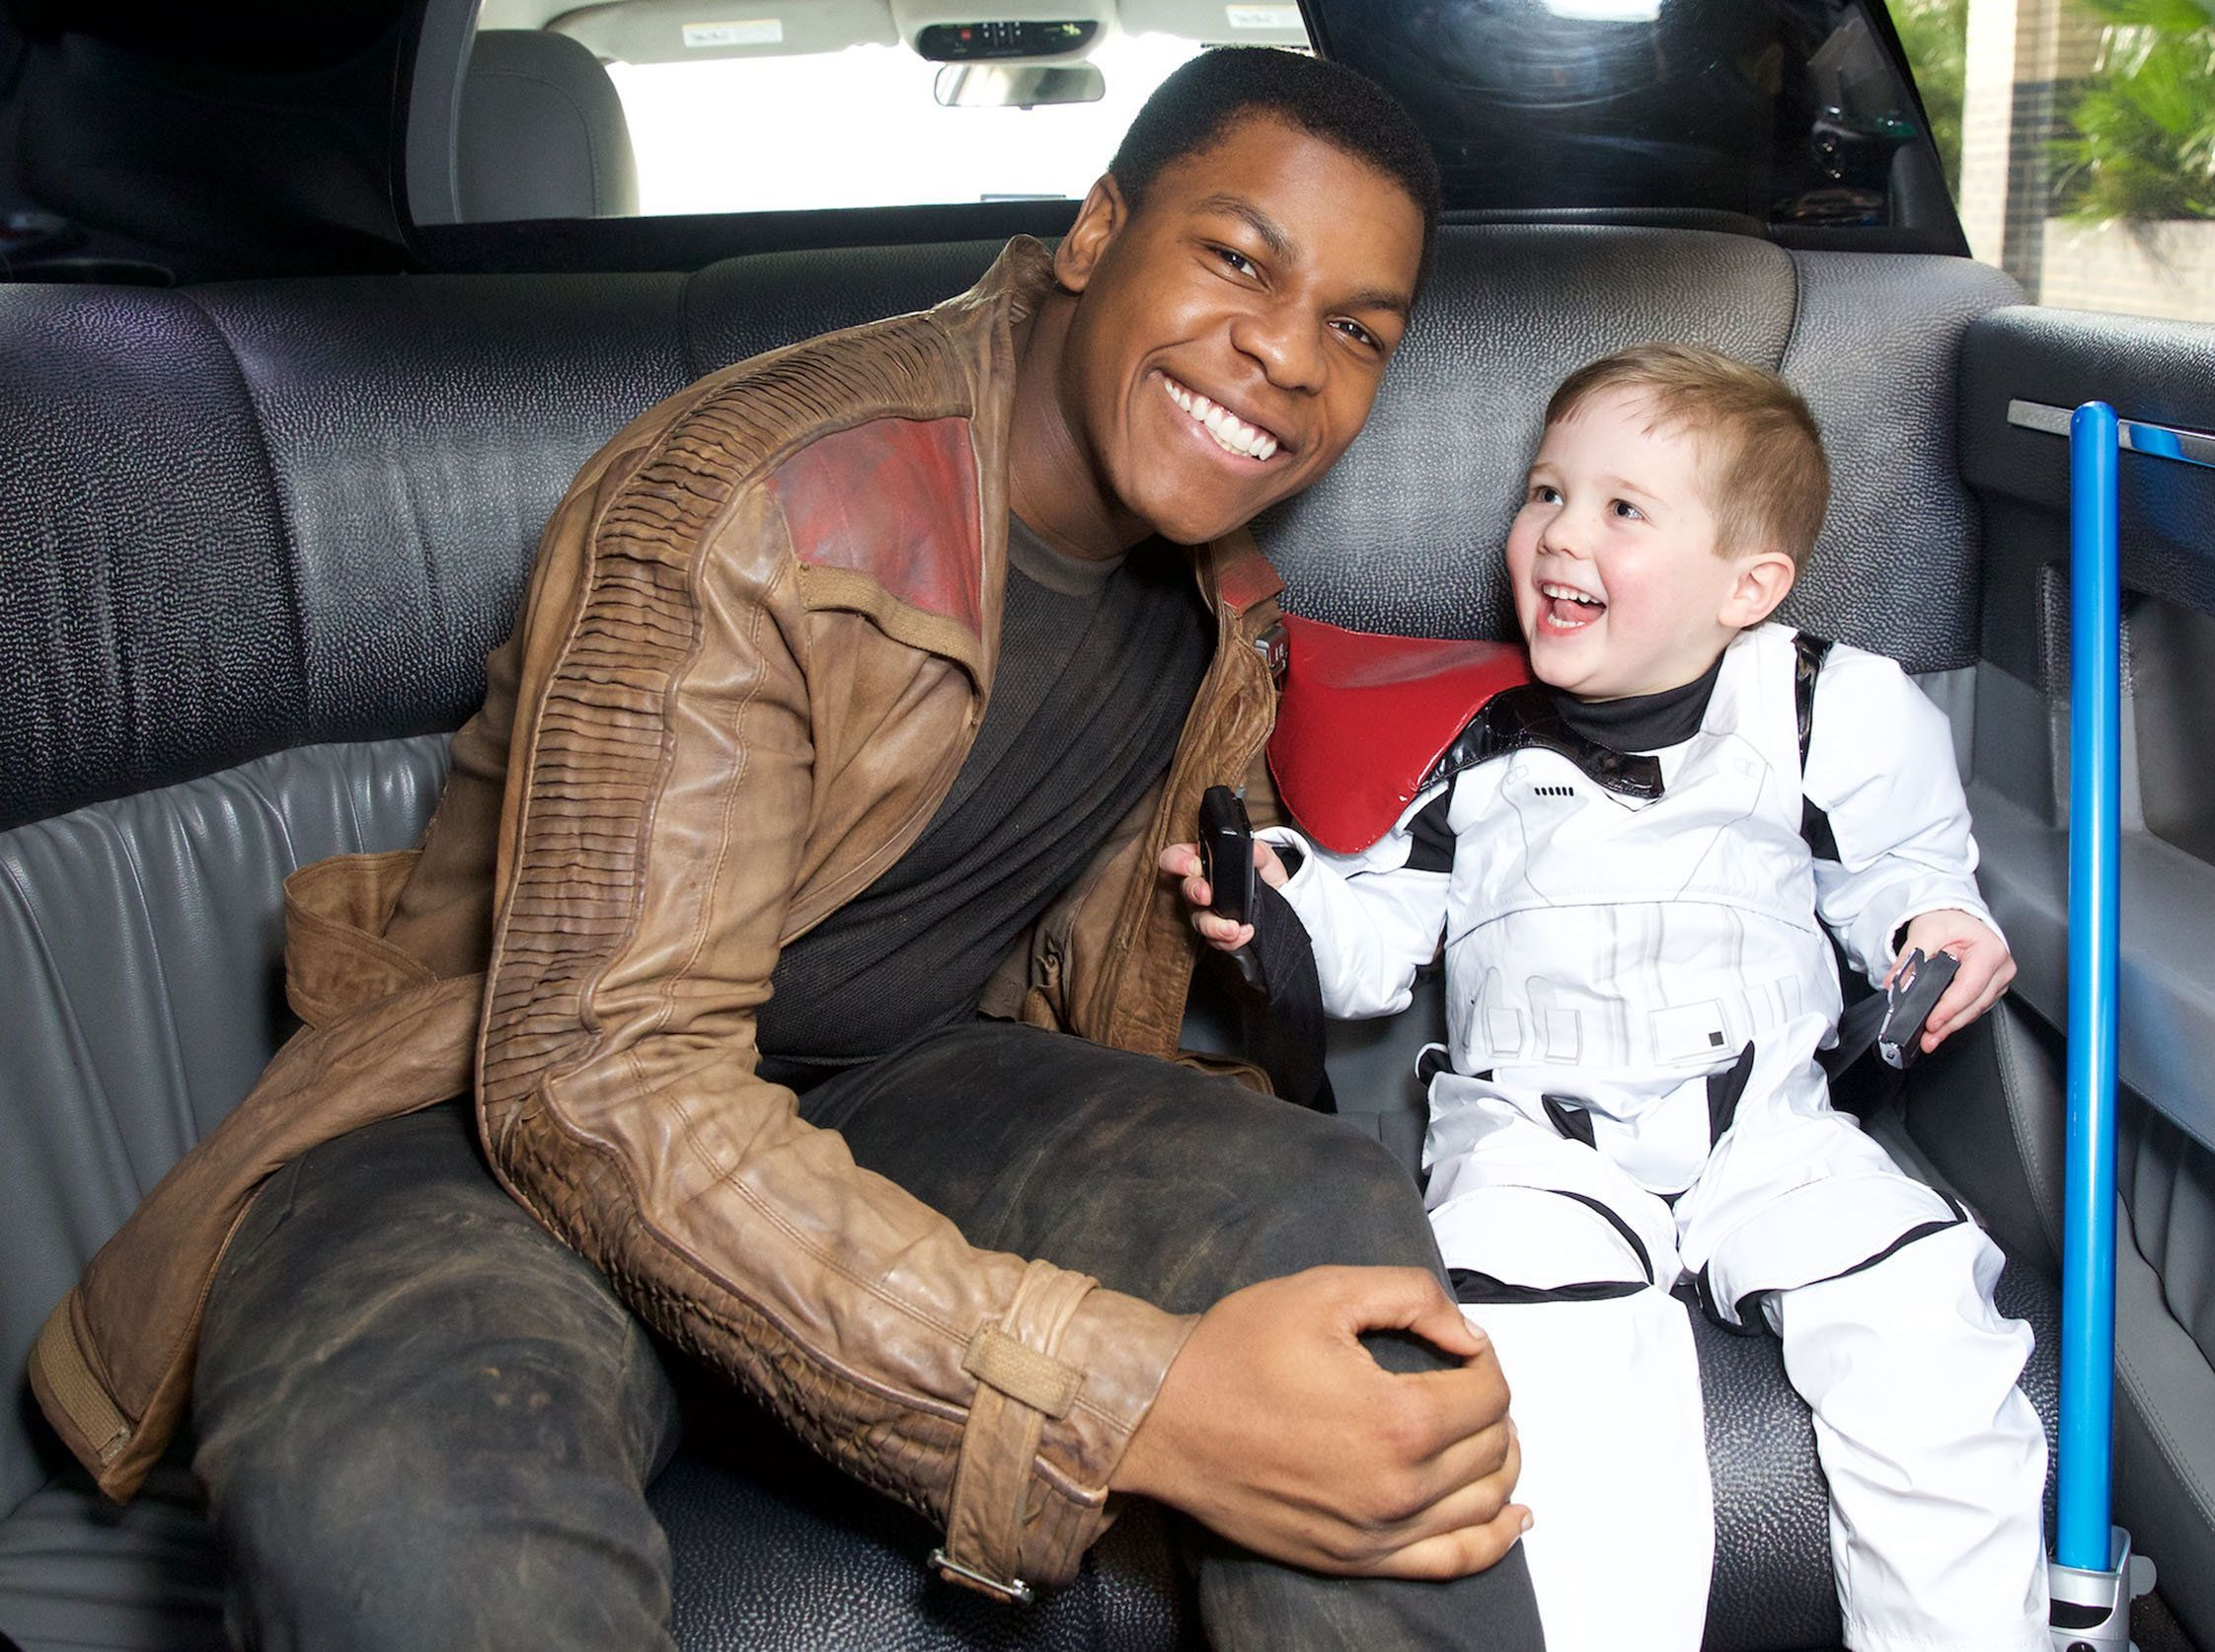 """Big-hearted Star Wars actor John Boyega meets sick children on a visit to a UK hospital.John, 23, who plays Finn in Star Wars: The Force Awakens, even got to show off his lightsaber at the Royal London Hospital. He visited with the Rays of Sunshine Children's Charity where he got to meet five-year-old Daniel Bell who is living with a brain tumour. He asked to deliver toys with 'Finn' to young patients being treated at the hospital.Rosalind, Daniel's mum, said: """"Daniel loves Star Wars and especially Finn - he thinks he is super cool and runs around the house pretending to be him every day.""""John Boyega said: """"When I heard about Daniel's wish to meet Finn, I jumped at the chance to make it come true. """"It was fantastic to be a part of his very special wish with Rays of Sunshine.""""It was also great to meet the children at The Royal London Hospital and be a part of something so positive.""""Tara Shea, Play Team Leader at The Royal London Hospital, added: """"We were so honoured to be asked to help make Daniel's wish come true, to meet Finn and give other children in hospital gifts.""""Rays of Sunshine Children's Charity brightens up the lives of seriously ill children in the UK aged three to 18 years old by granting wishes, granting hospital ward wishes and organising outings and large scale events for seriously ill children, including The Rays of Sunshine Concert.*MUST CREDIT Splash/Rays of Sunshine* <P>Pictured: John Boyega meets Daniel<B>Ref: SPL1244968  140316  </B><BR/>Picture by: Splash/Rays of Sunshine<BR/></P><P><B>Splash News and Pictures</B><BR/>Los Angeles:310-821-2666<BR/>New York:212-619-2666<BR/>London:870-934-2666<BR/>photodesk@splashnews.com<BR/></P>"""